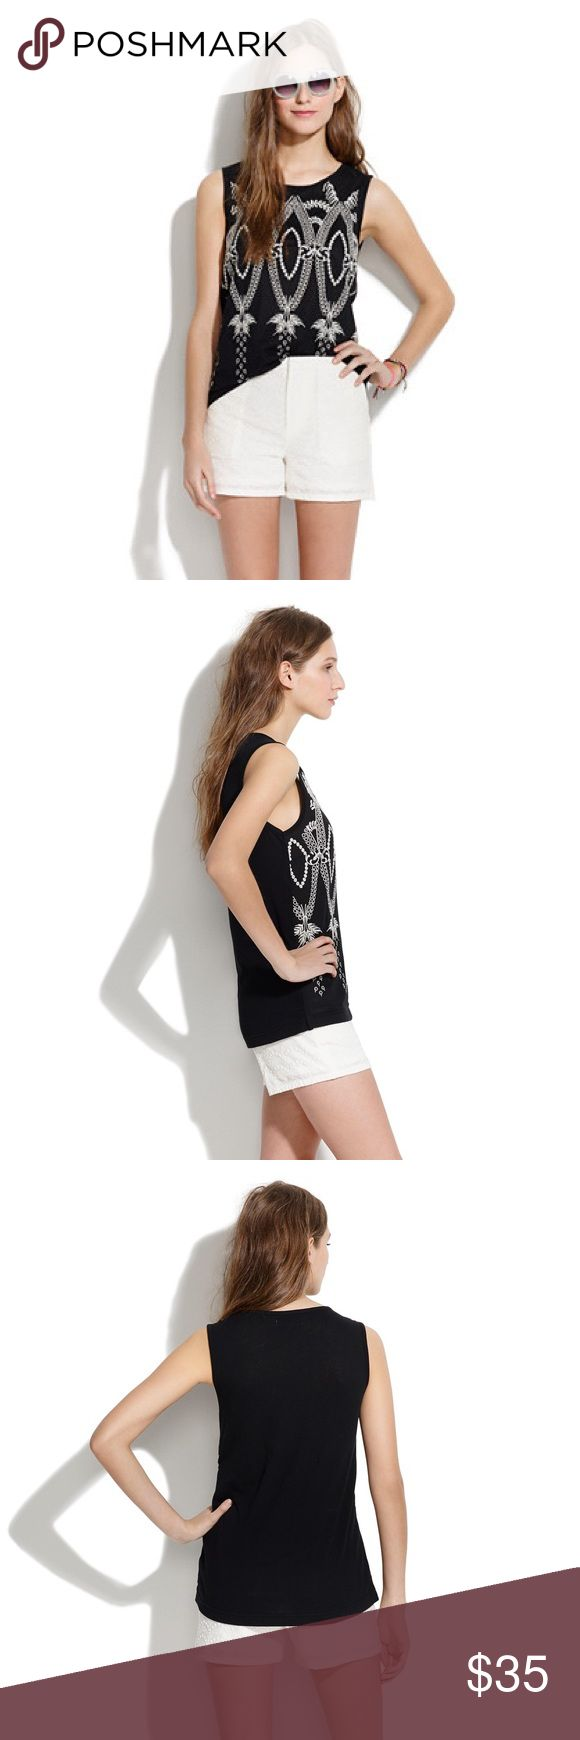 🆕 Madewell Oaxaca tank in black The lovely Oaxaca embroidered tank top!  In black with detailed cream embroidery, breezy and lightweight. In excellent used condition, only selling because it doesn't fit anymore.   Size medium More pics coming soon! Madewell Tops Tank Tops